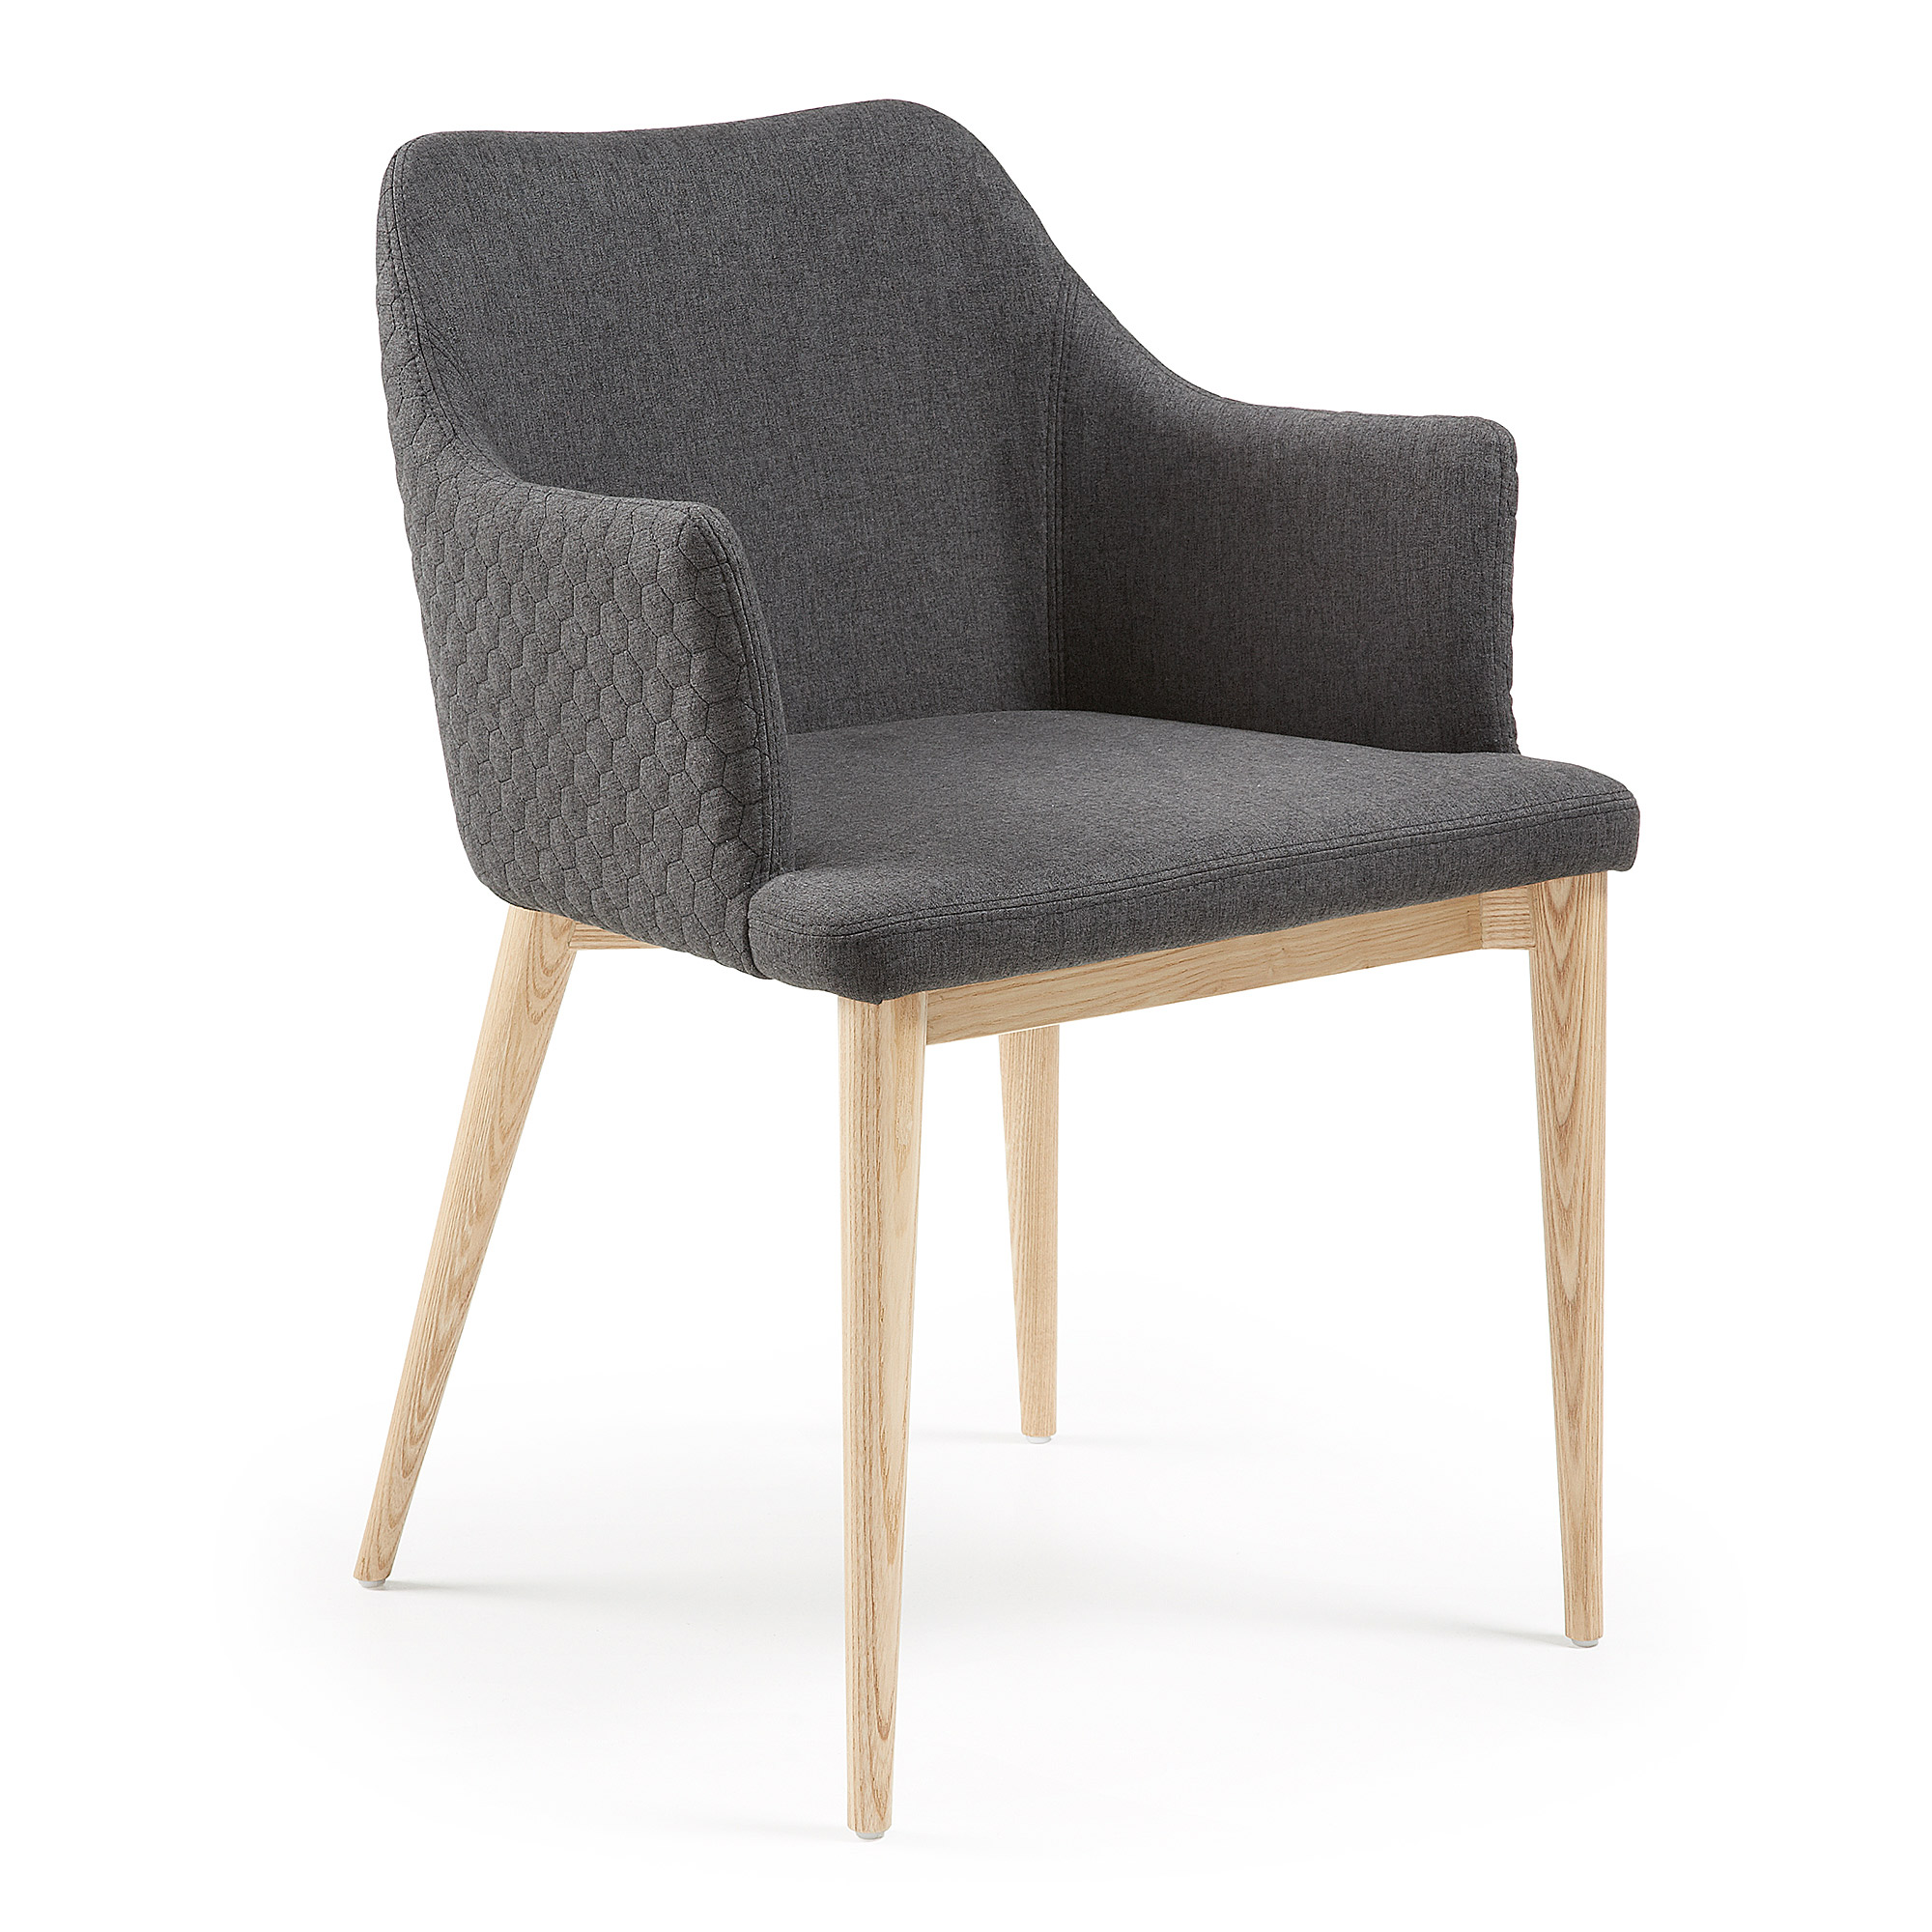 Danai Dining Chair (Natural Leg)